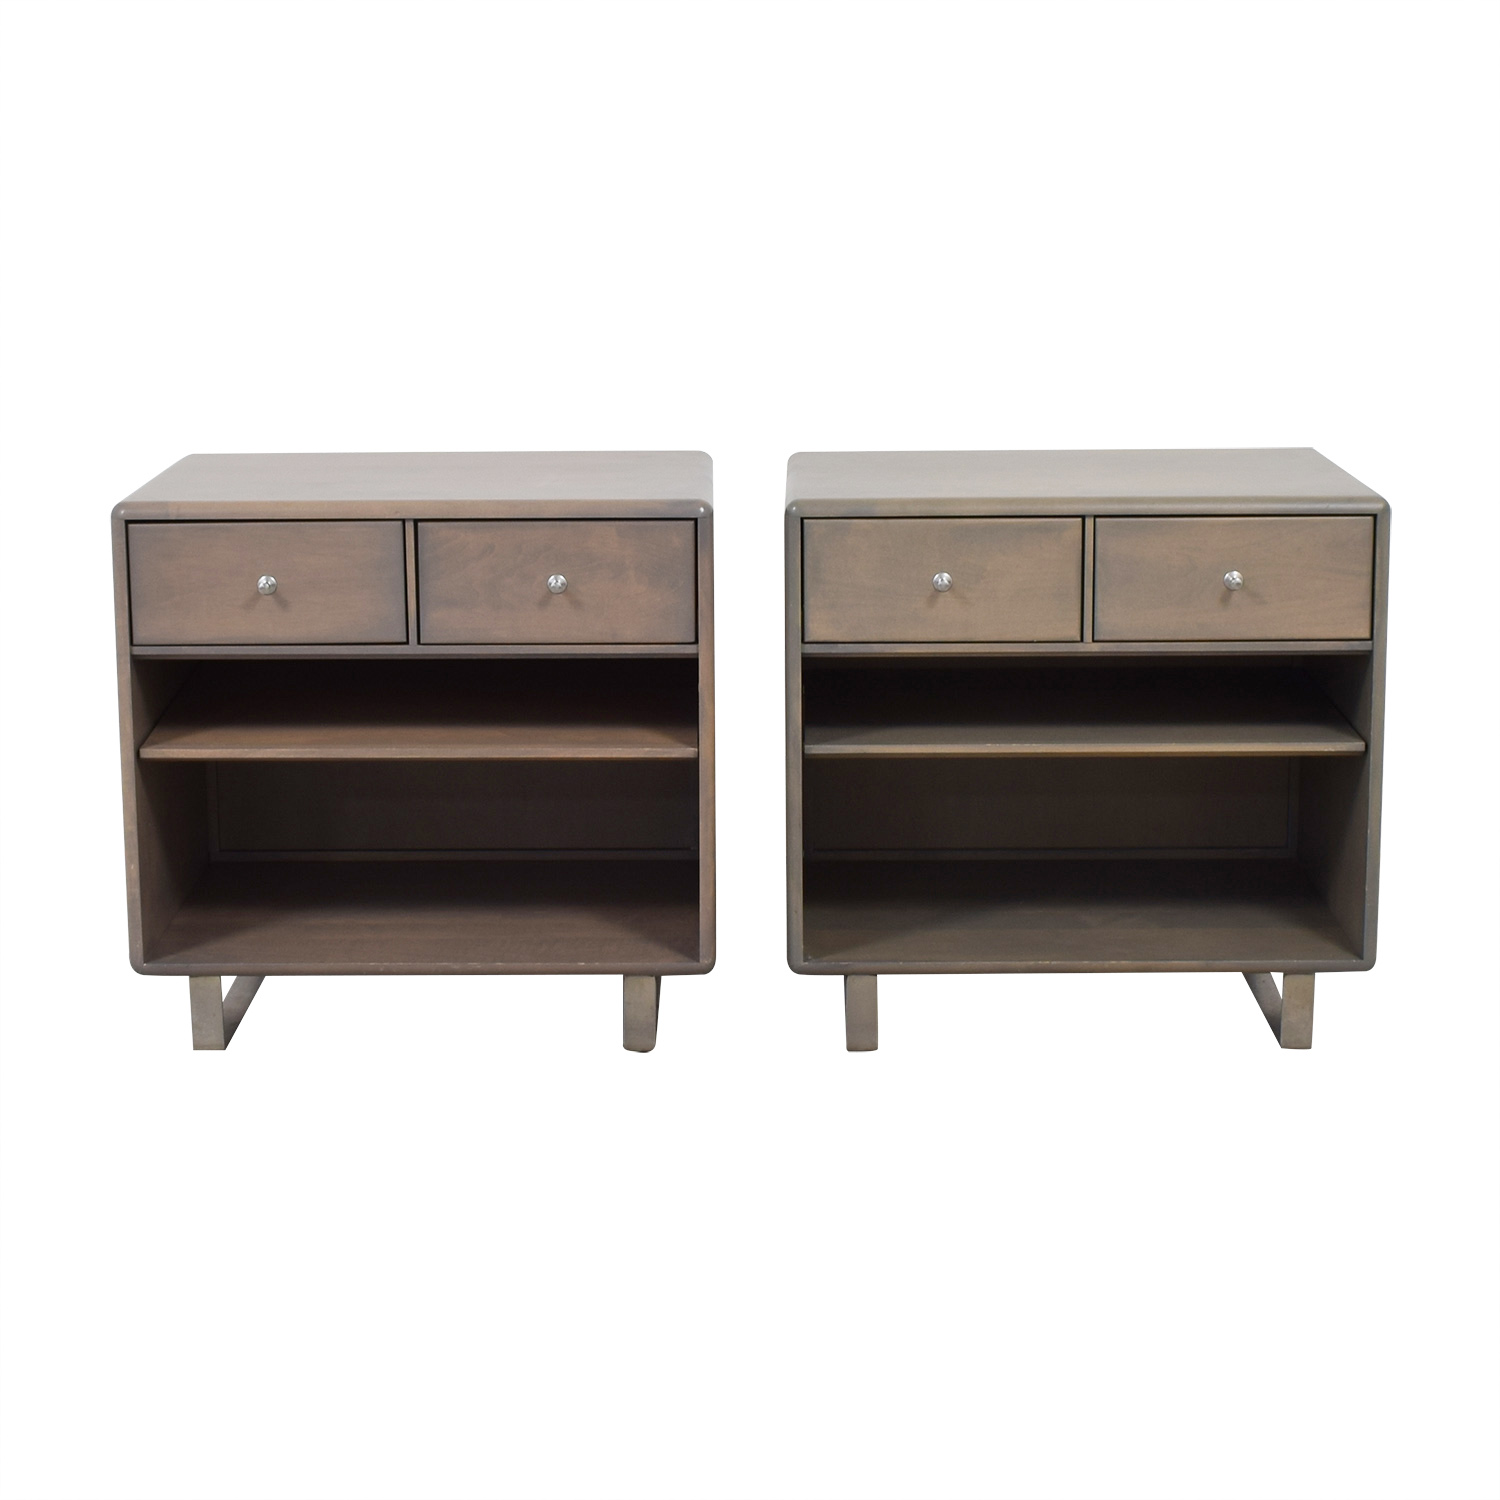 Room & Board Room & Board Whitney Two-Drawer Nightstands coupon